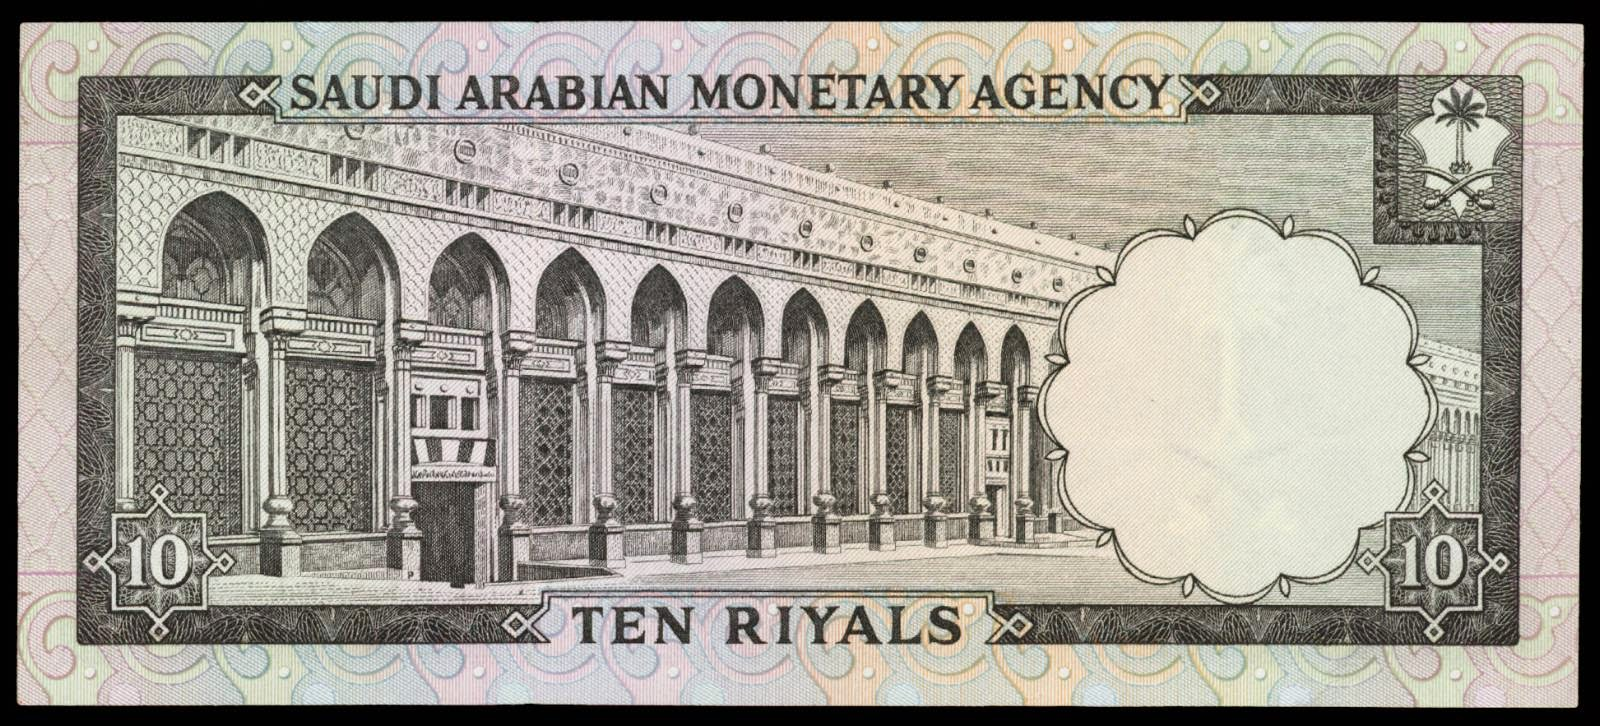 Saudi Arabia money currency 10 Saudi Riyals banknote 1968